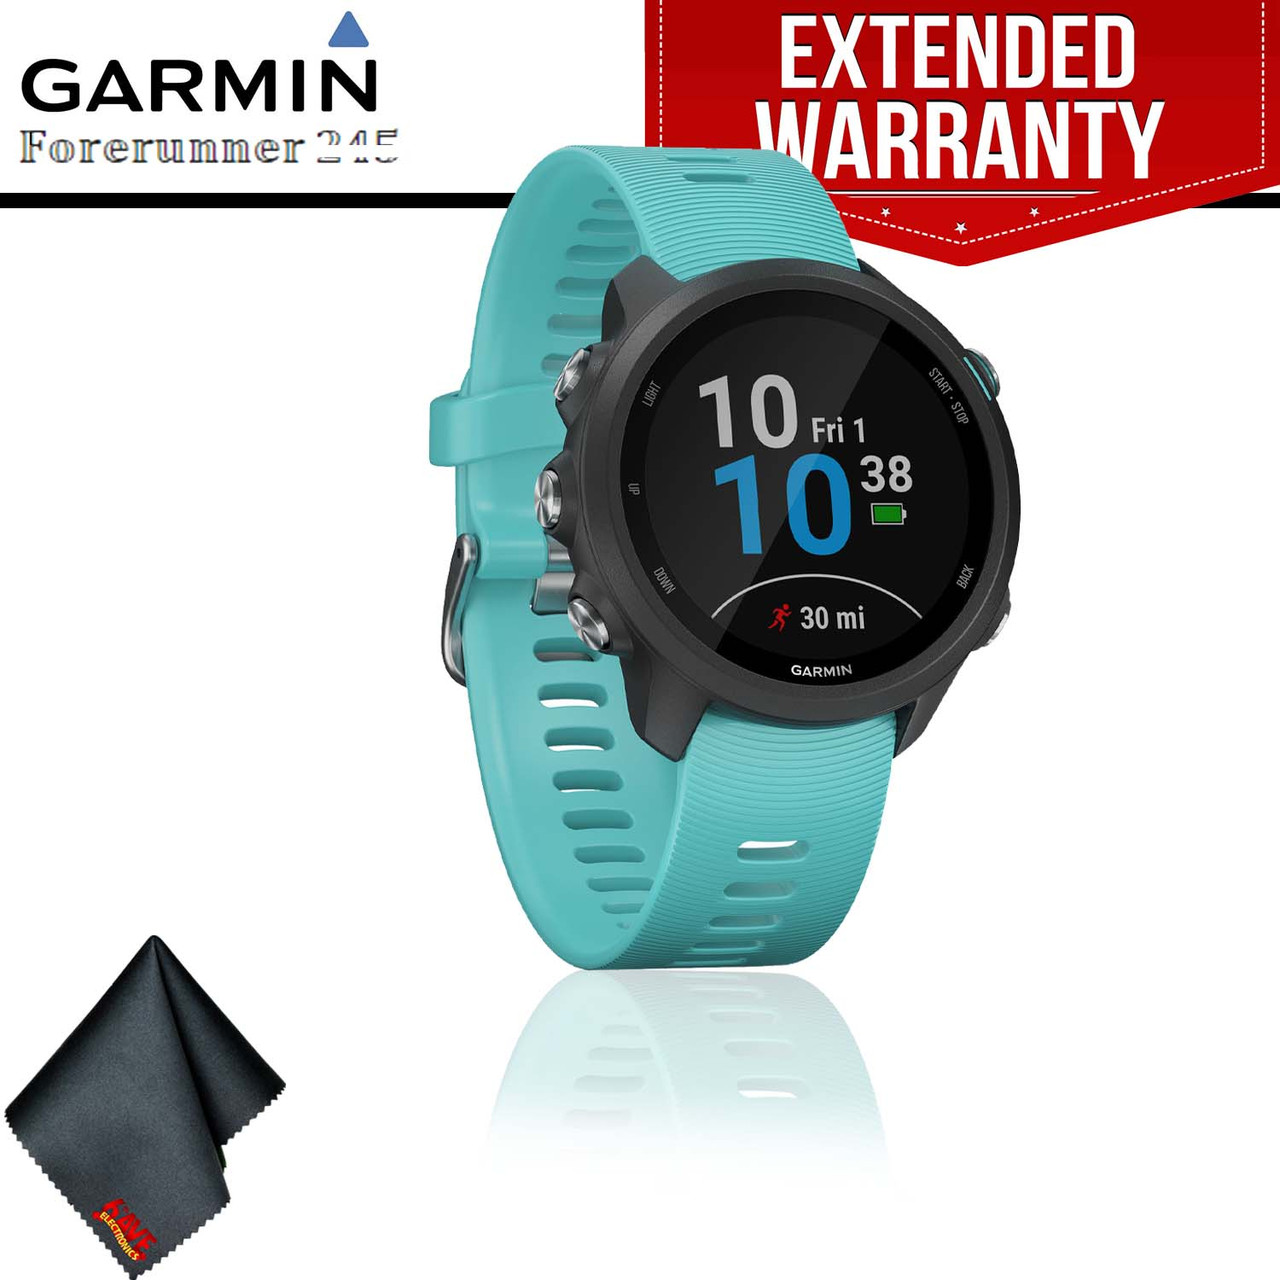 8a1d1d25b Garmin Forerunner 245 Music GPS Running Smartwatch (Aqua) + Extended  Warranty + Cleaning Cloth